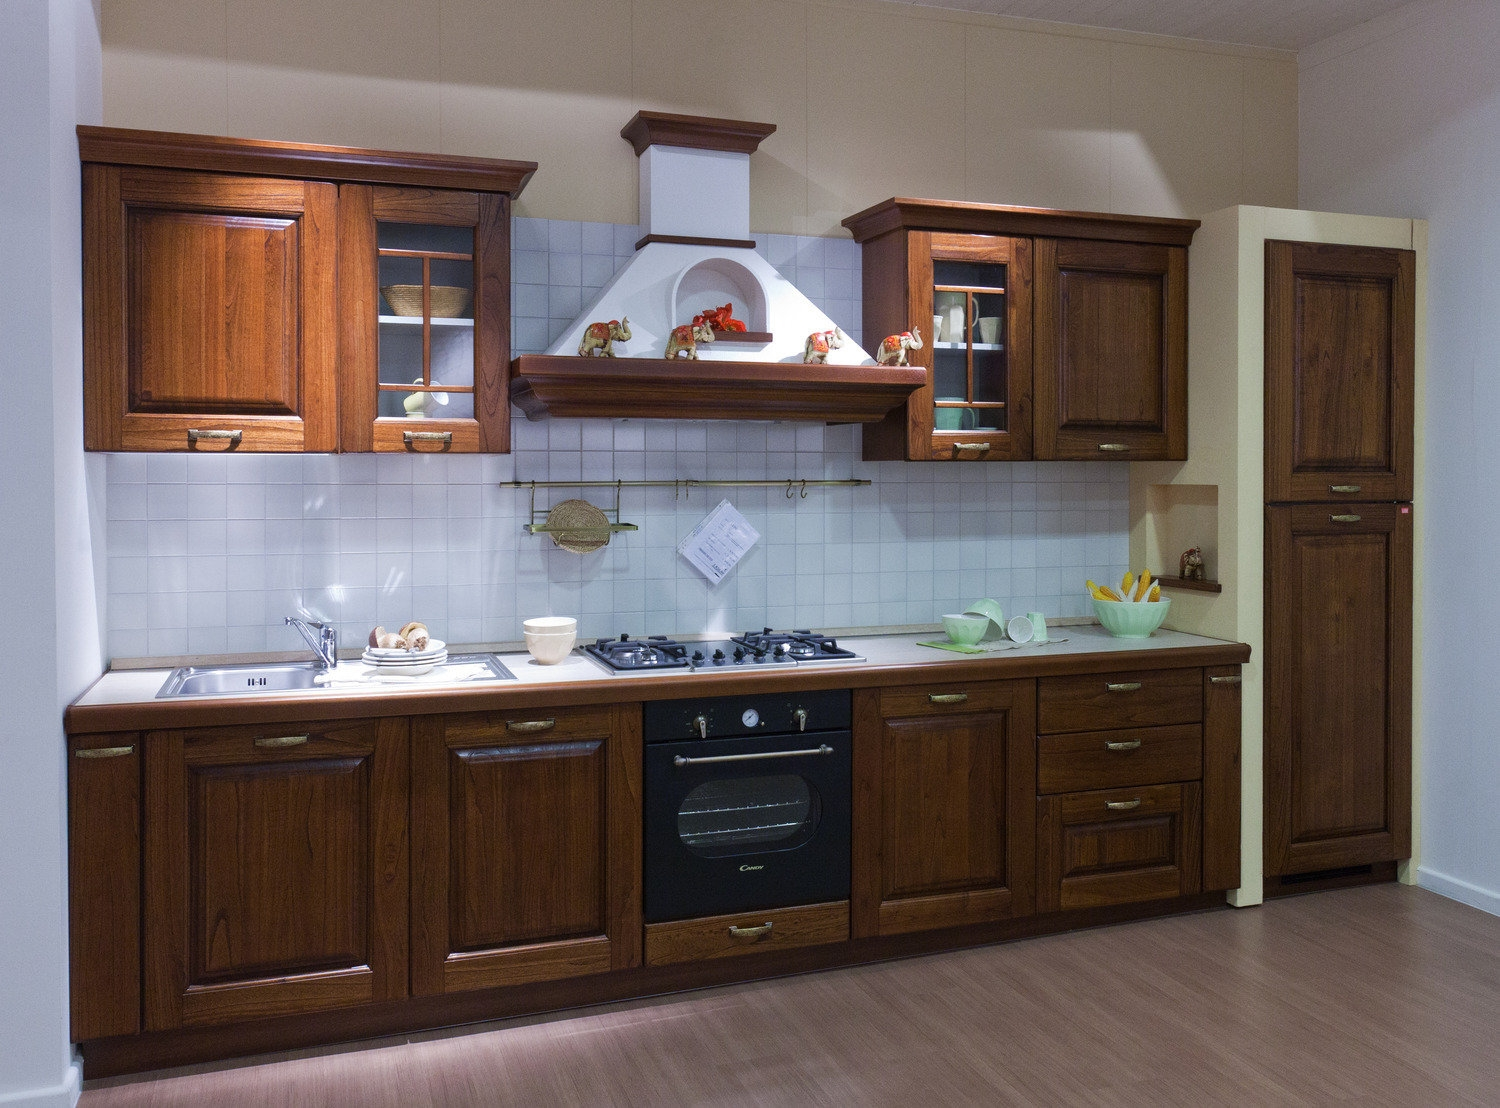 Awesome Cucina Laura Lube Photos - Design & Ideas 2017 - candp.us